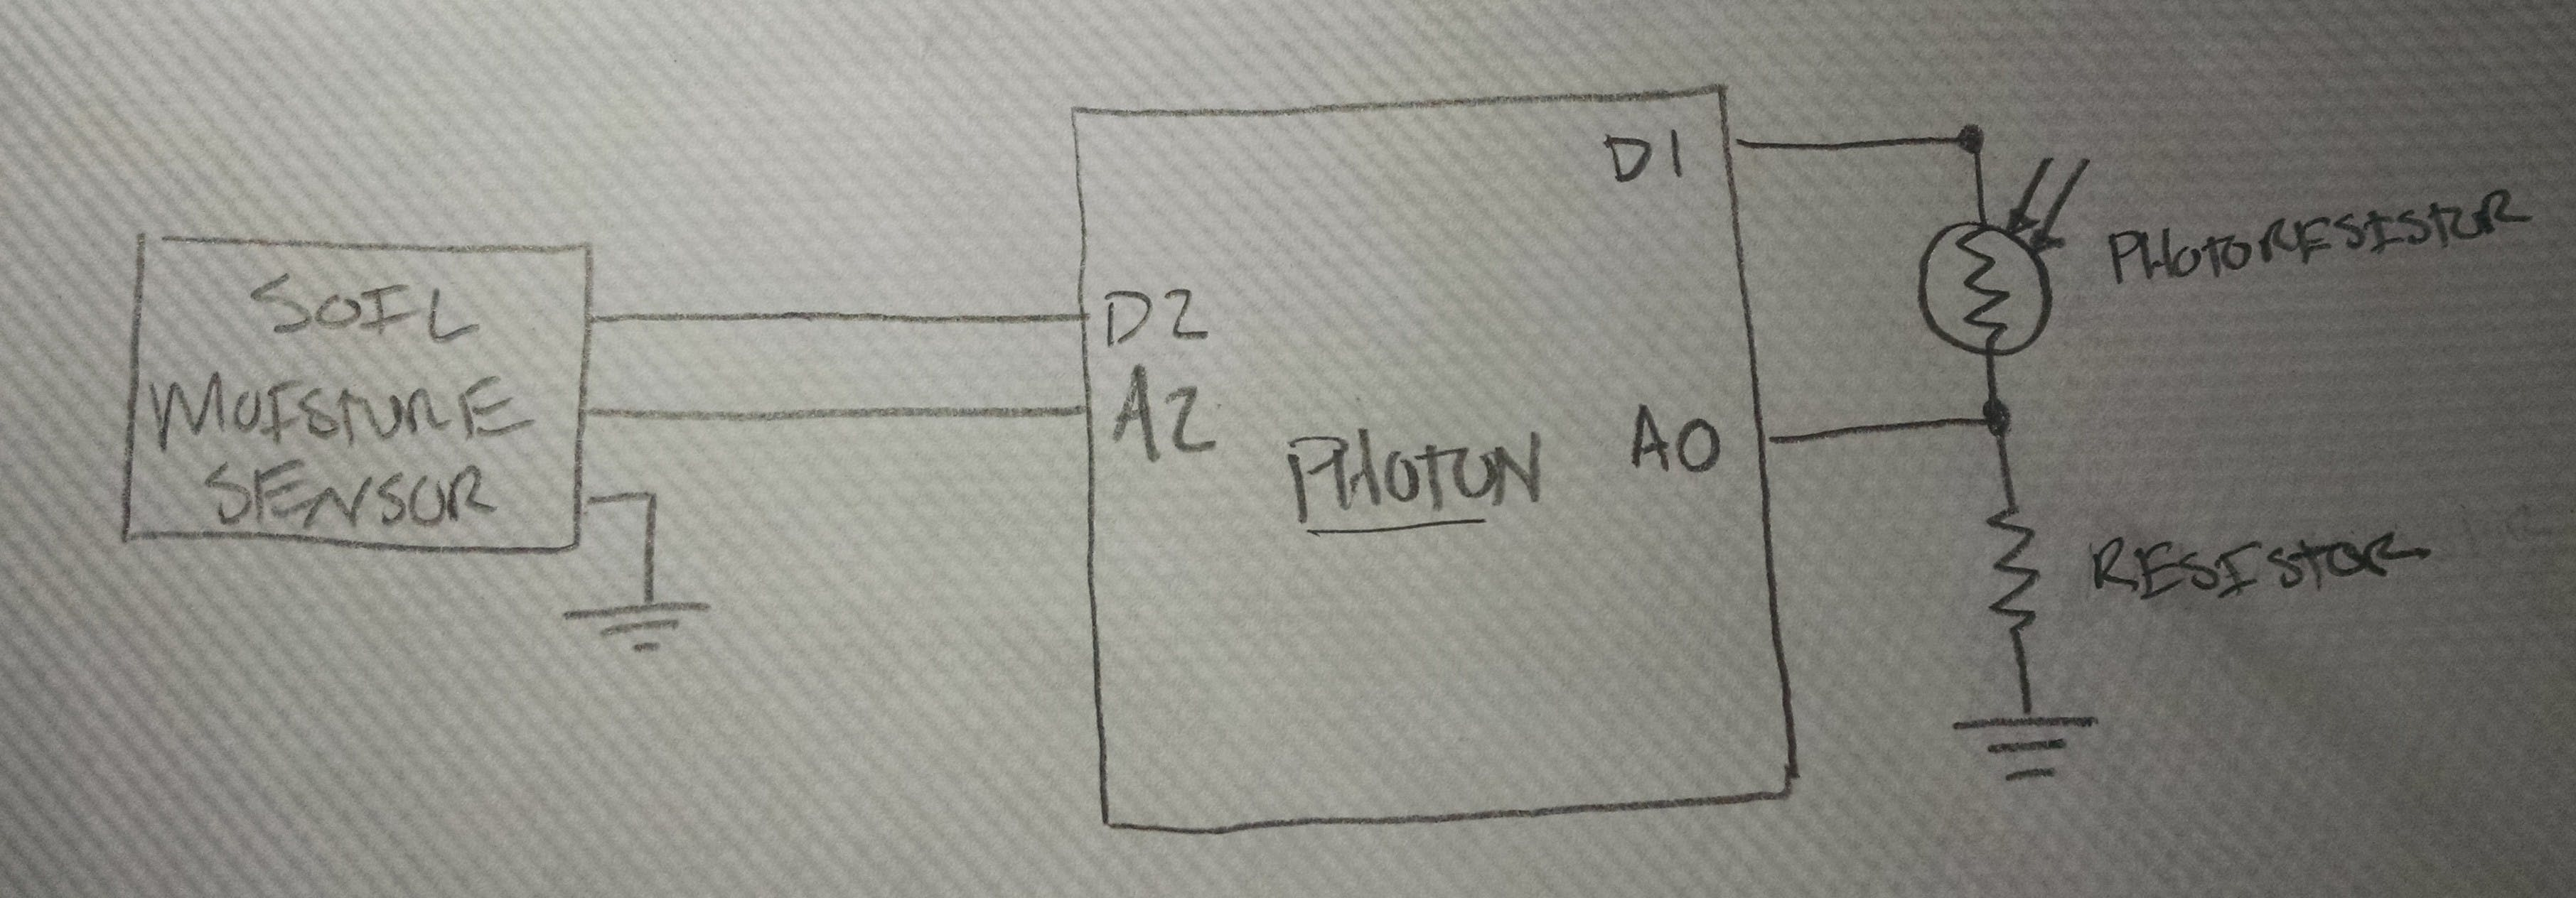 Sensor Wiring: note that this wiring and the wiring on the previous diagram all exist on the same Photon.